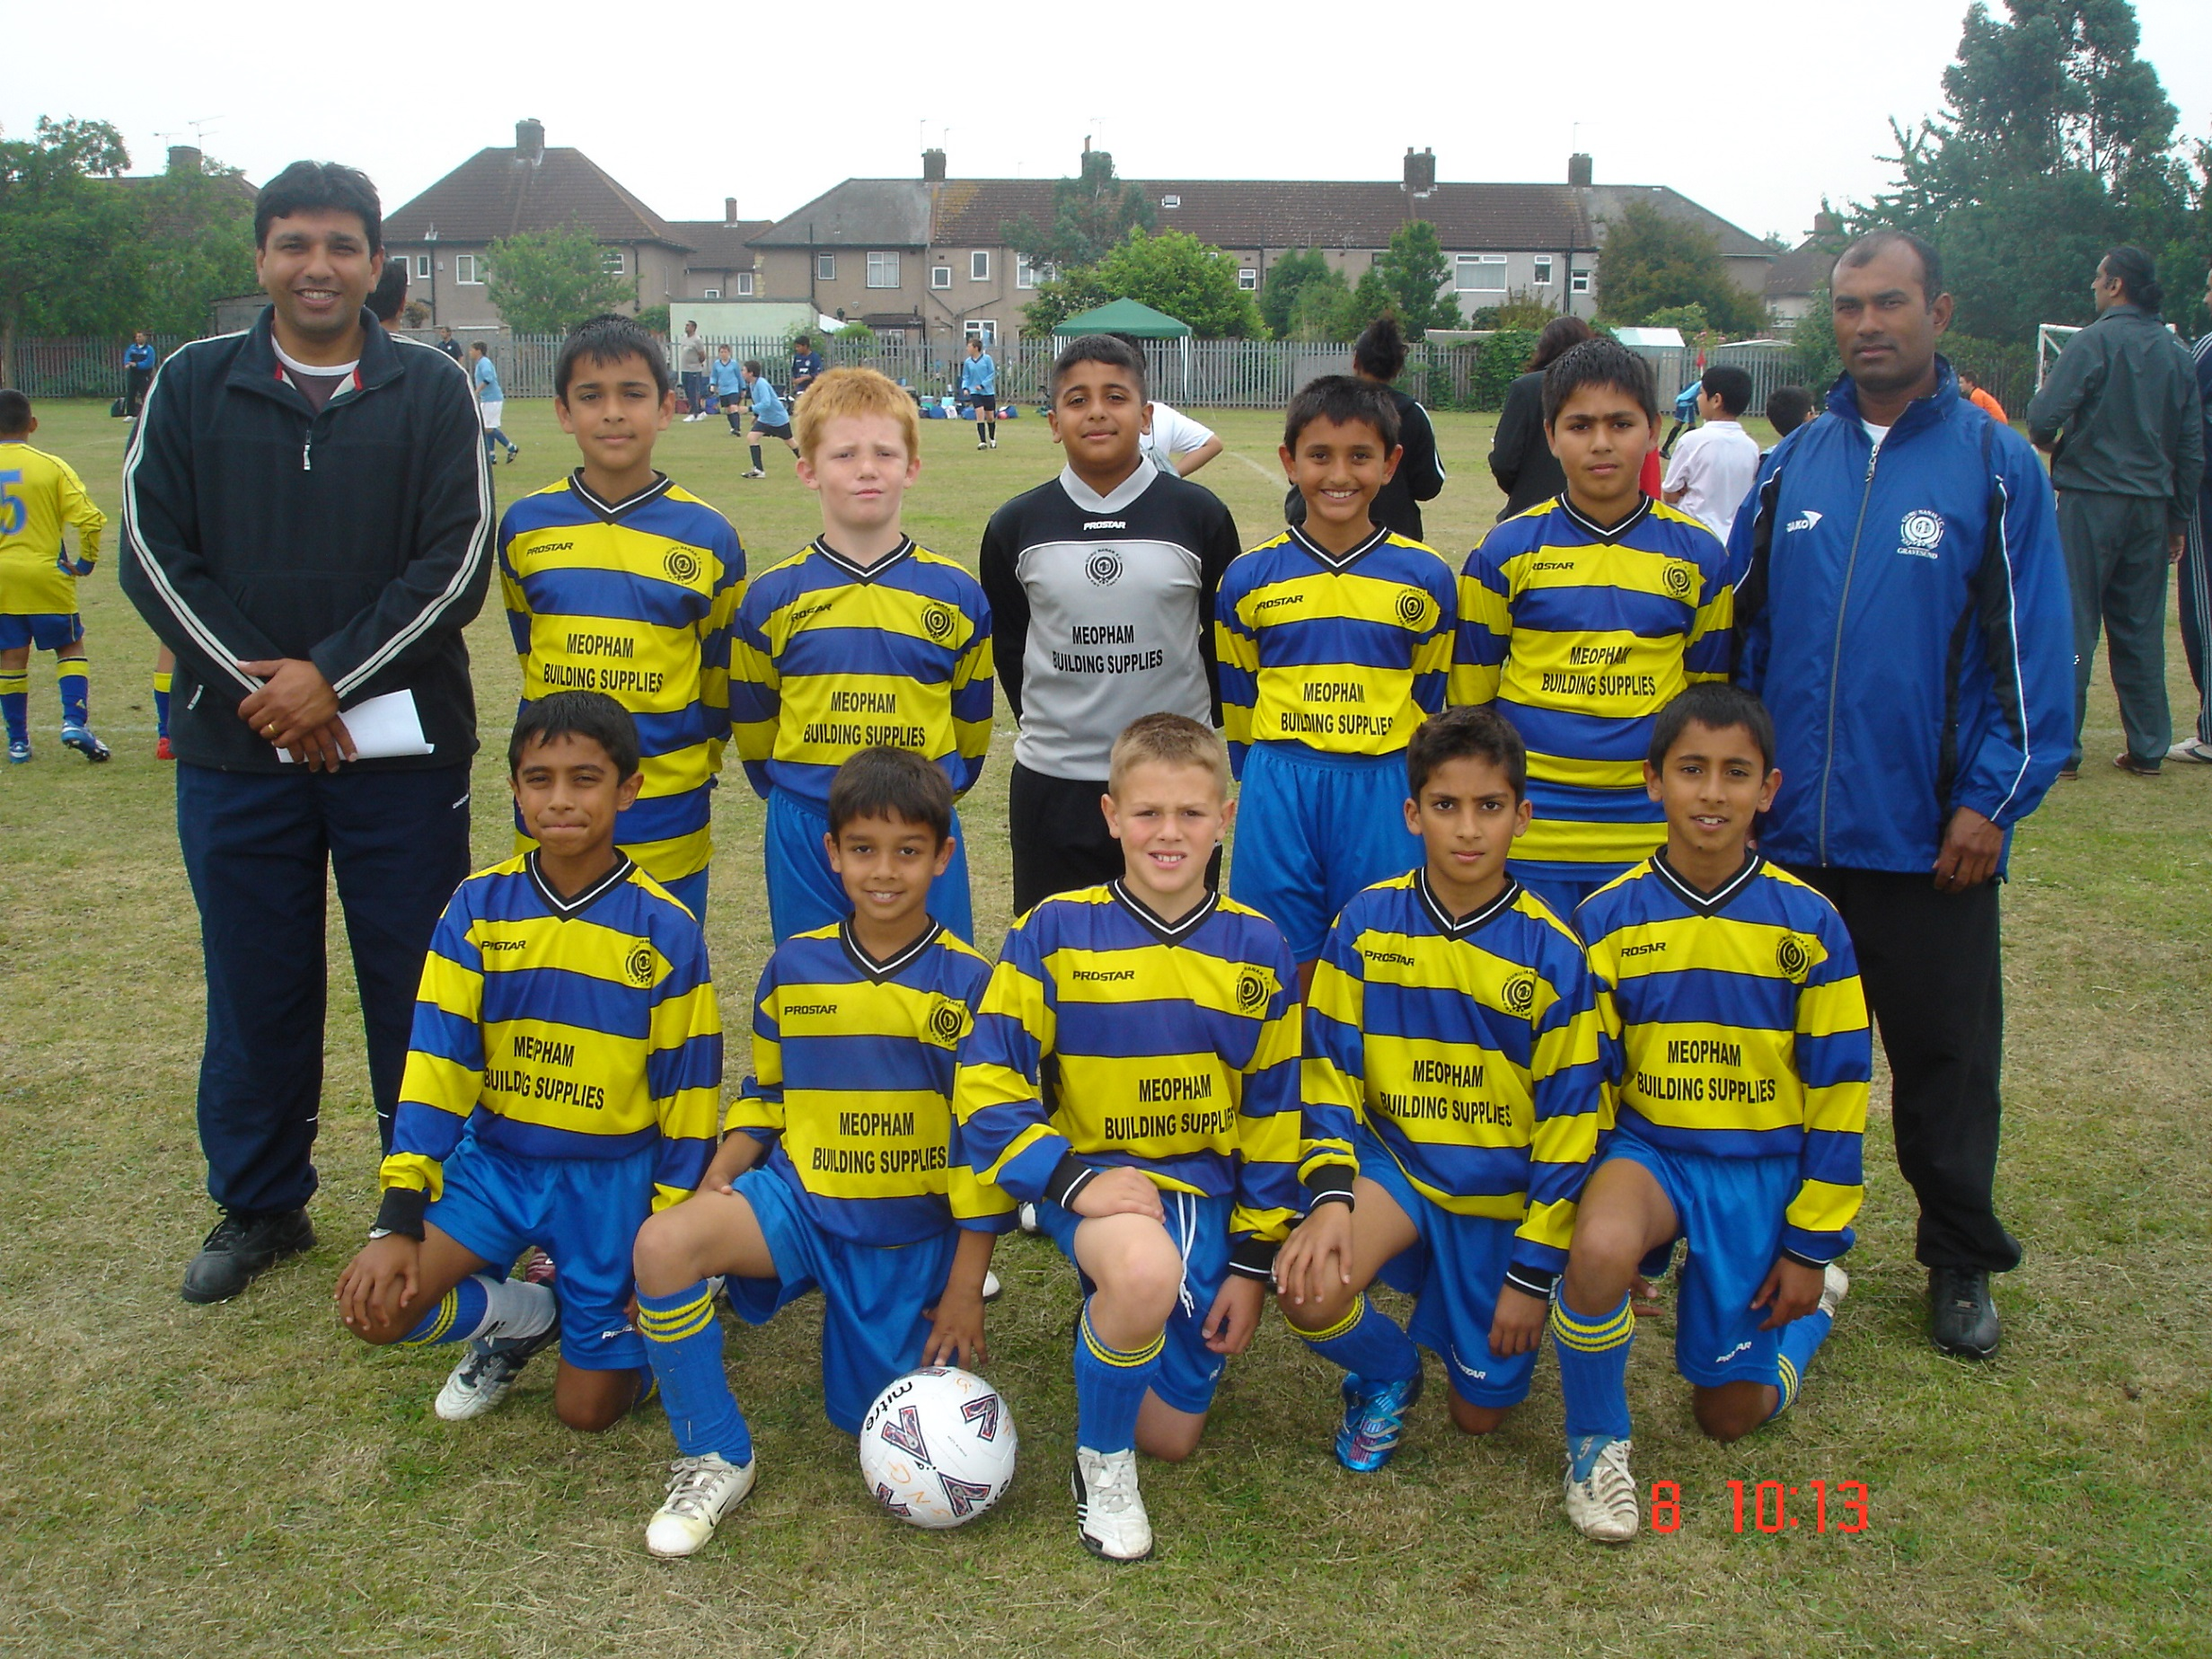 U10s at Barking 2007